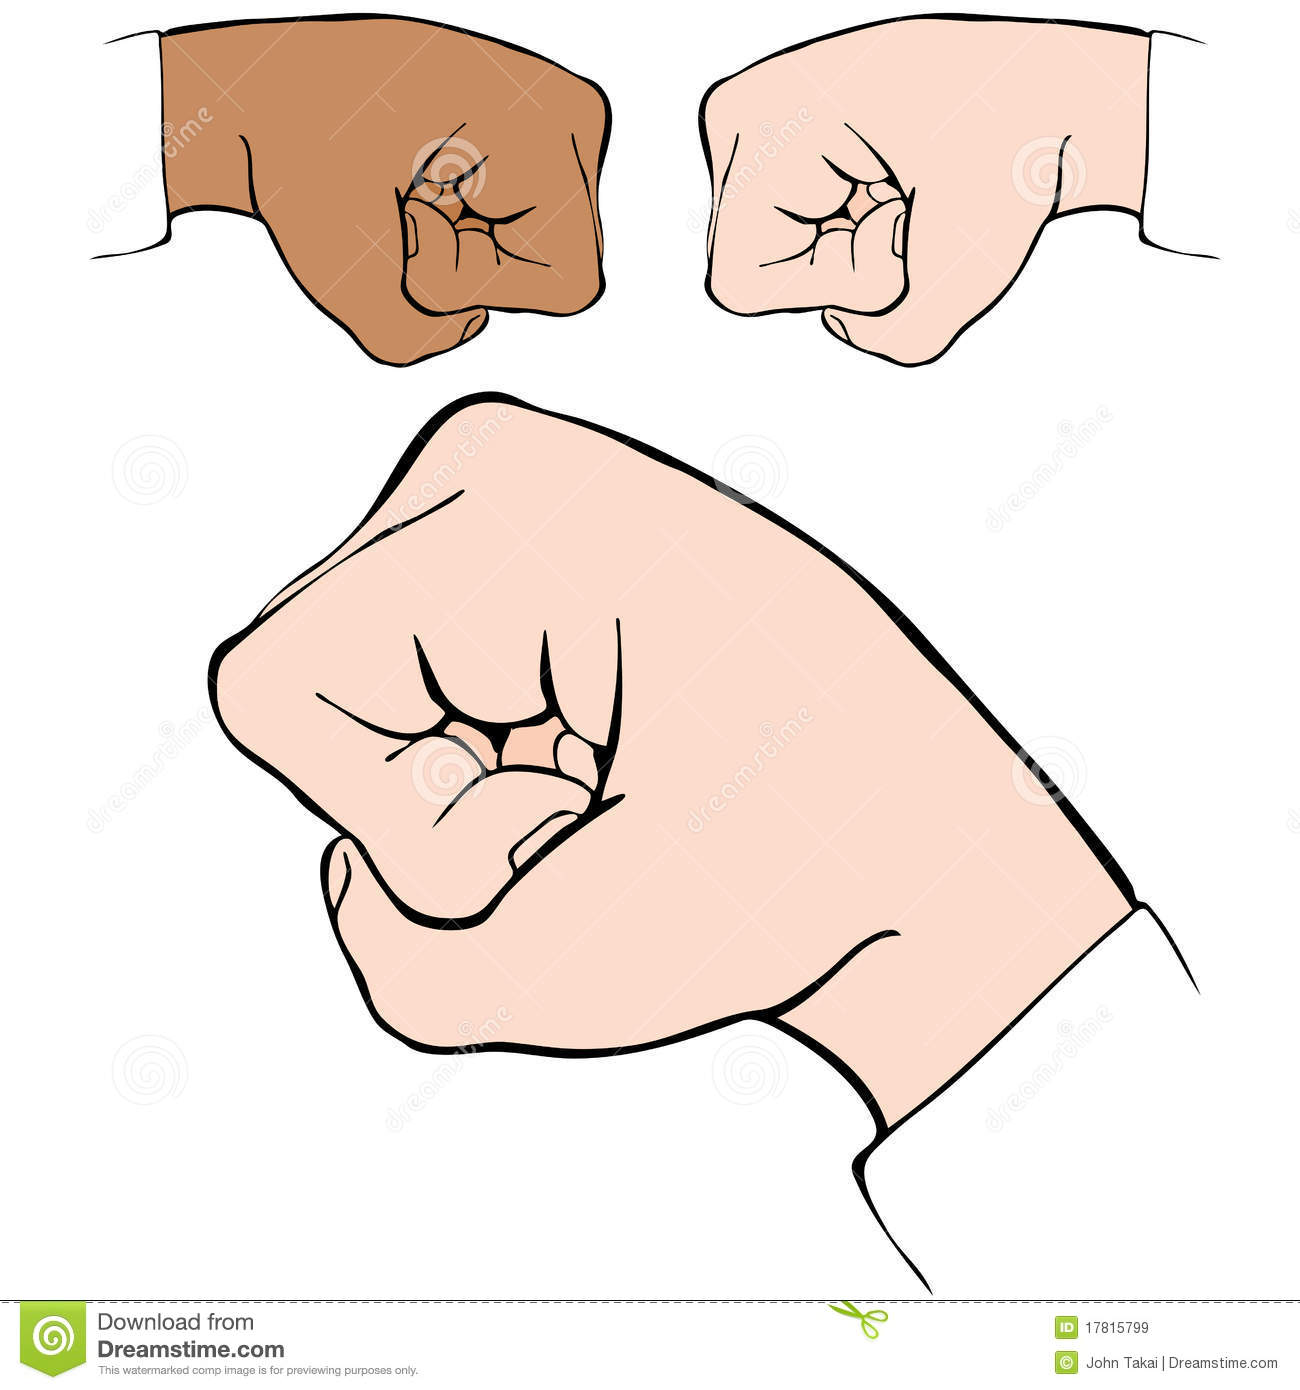 478 Fist Bump Cliparts Stock Vector And Royalty Free Fist